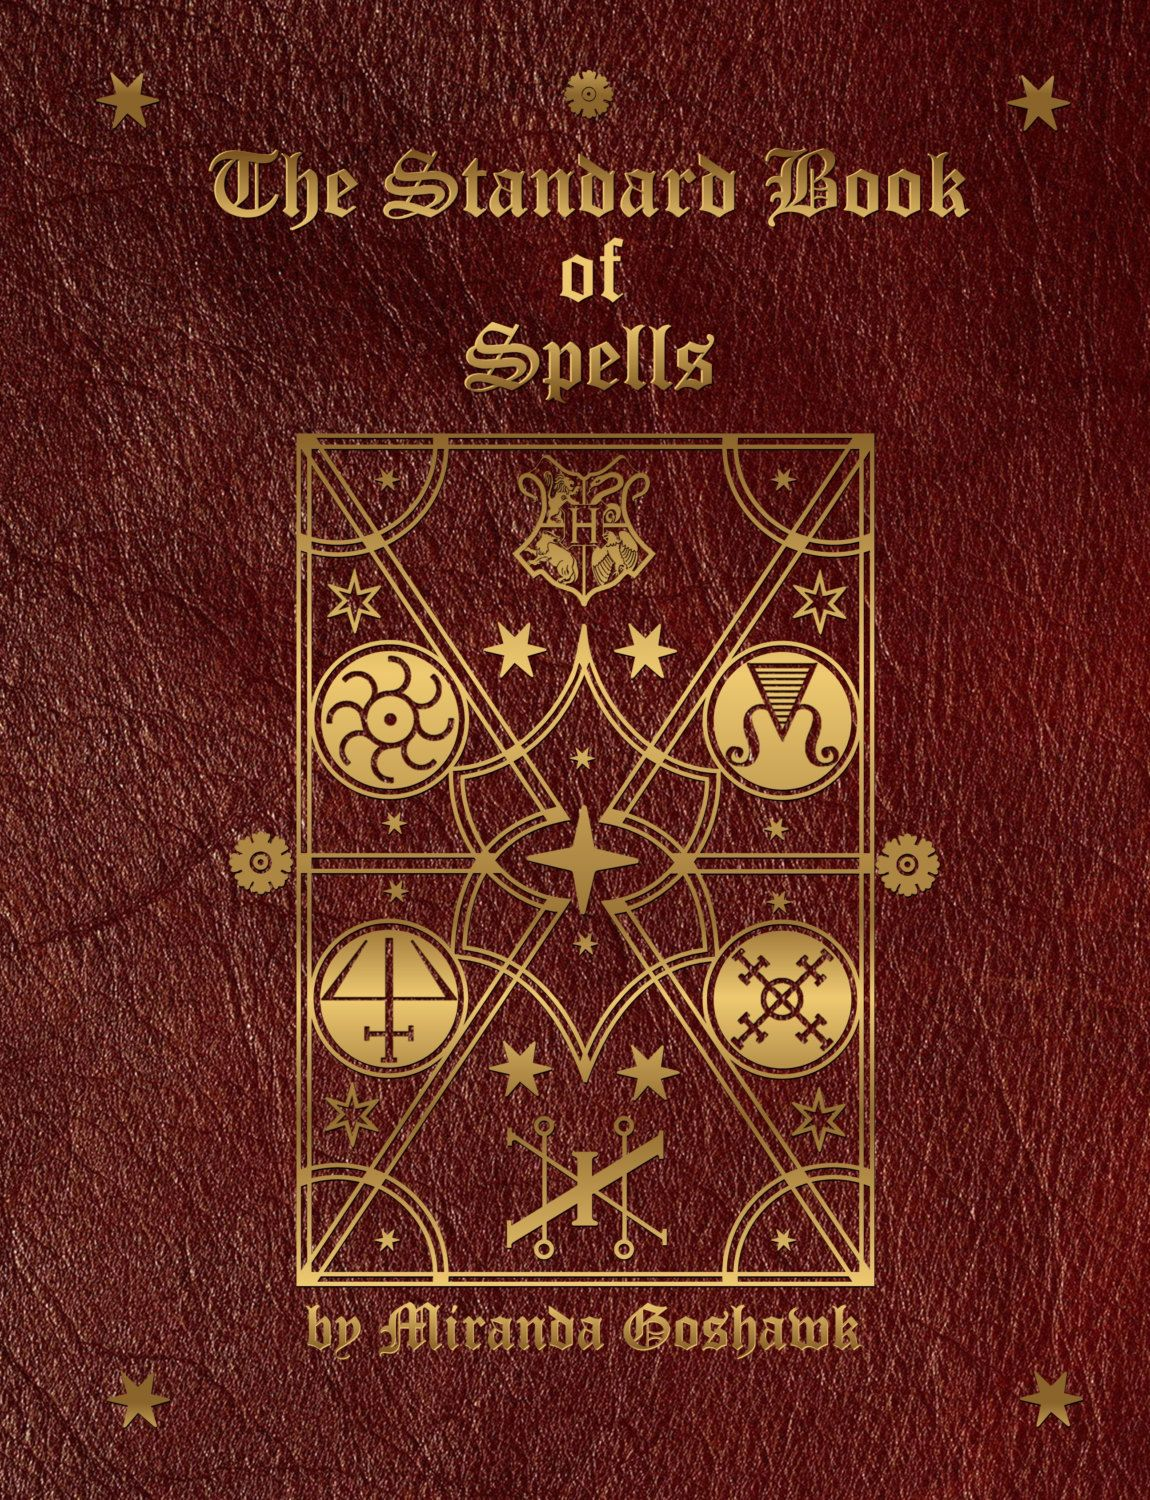 Spelling Book Cover Template : Pin by sable alexander on harry potter printables crafts